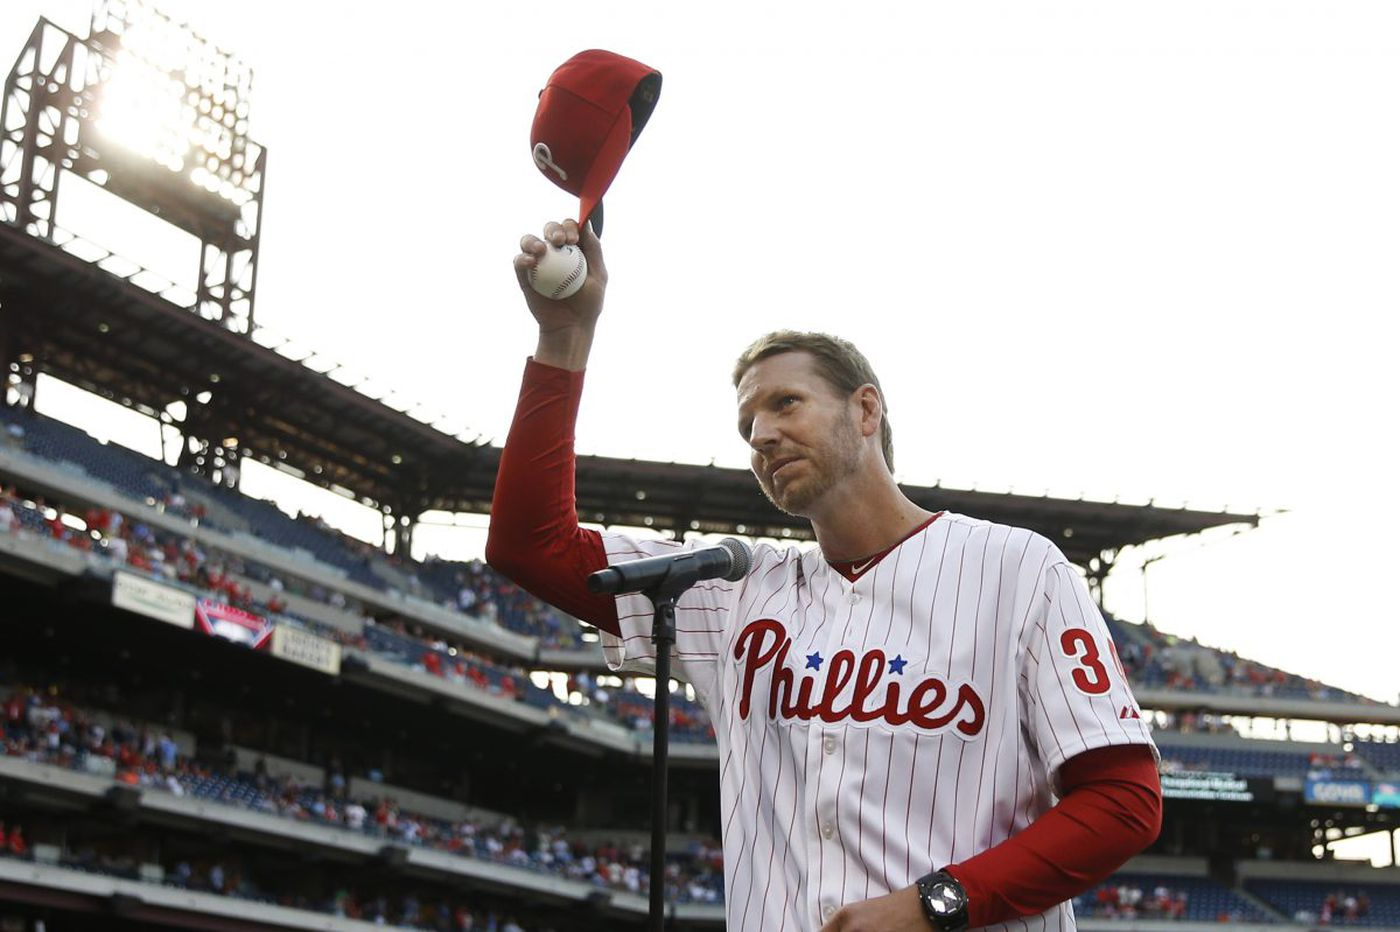 Autopsy: Roy Halladay had morphine, sleeping aids in system at death